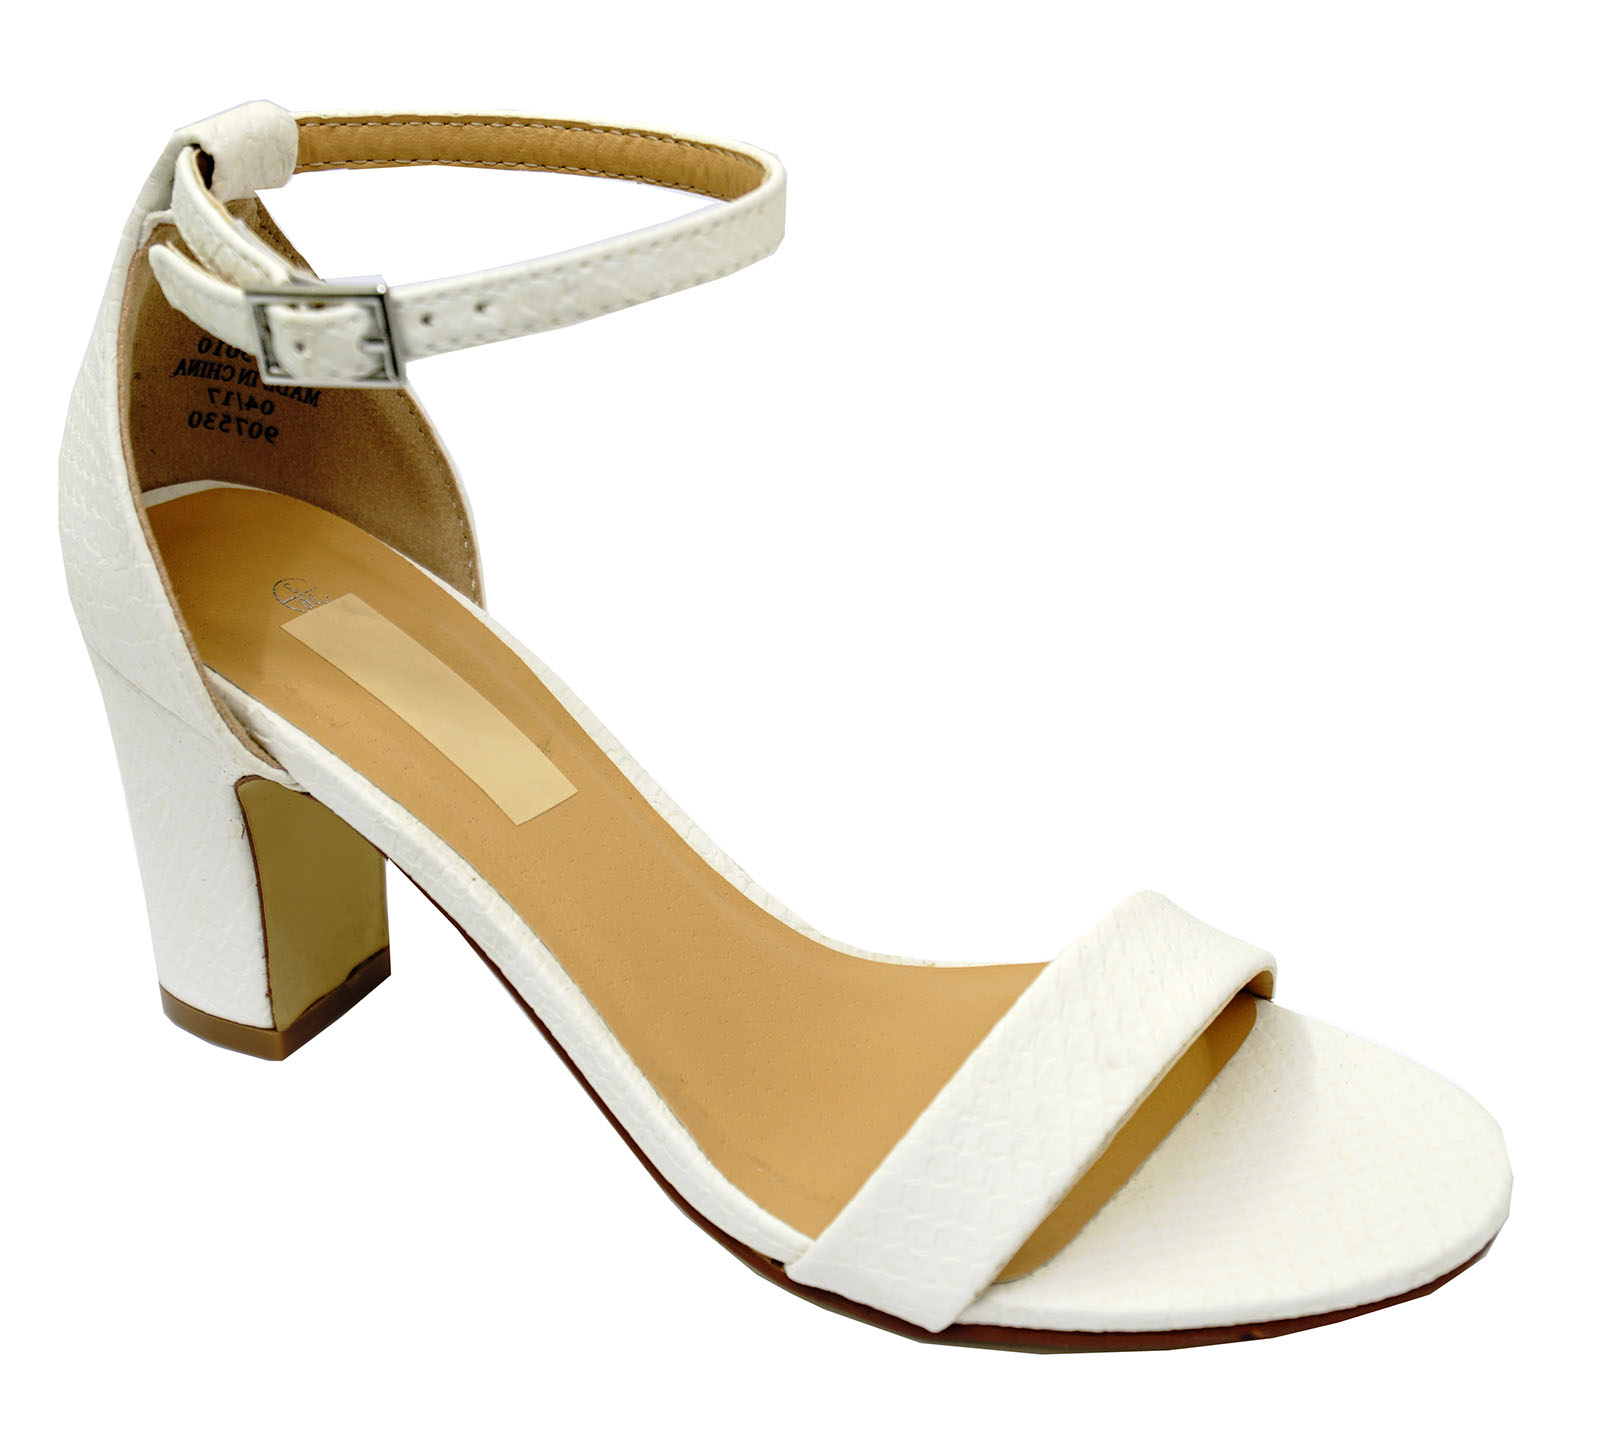 LADIES-WHITE-ANKLE-STRAP-BLOCK-HEEL-PEEPTOE-SANDALS-HOLIDAY-COMFY-SHOES-UK-3-8 thumbnail 7